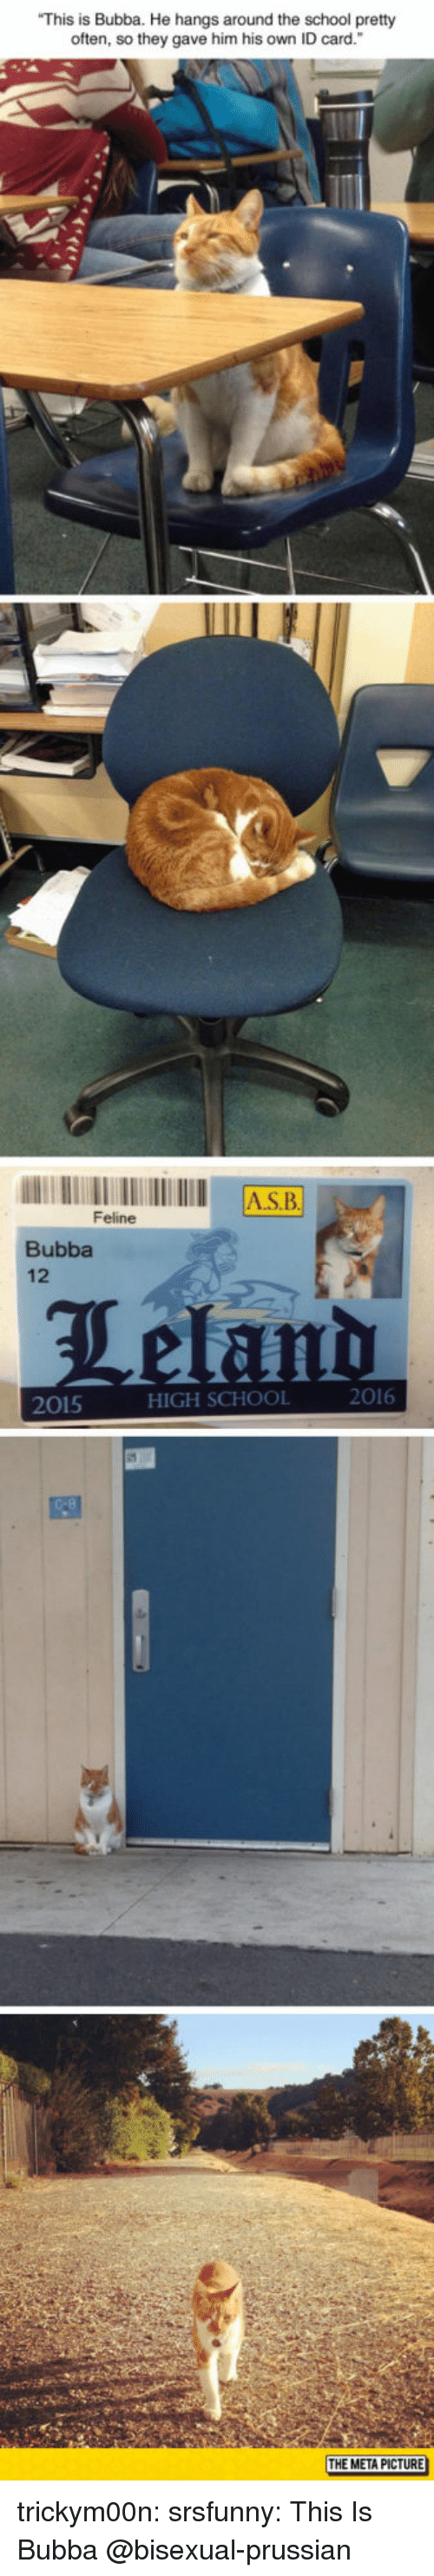 """Bubba: This is Bubba. He hangs around the school pretty  often, so they gave him his own ID card.""""  AS.B  Feline  Bubba  12  2016  2015  HIGH SCHOOL  THE META PICTURE trickym00n:  srsfunny:  This Is Bubba  @bisexual-prussian"""